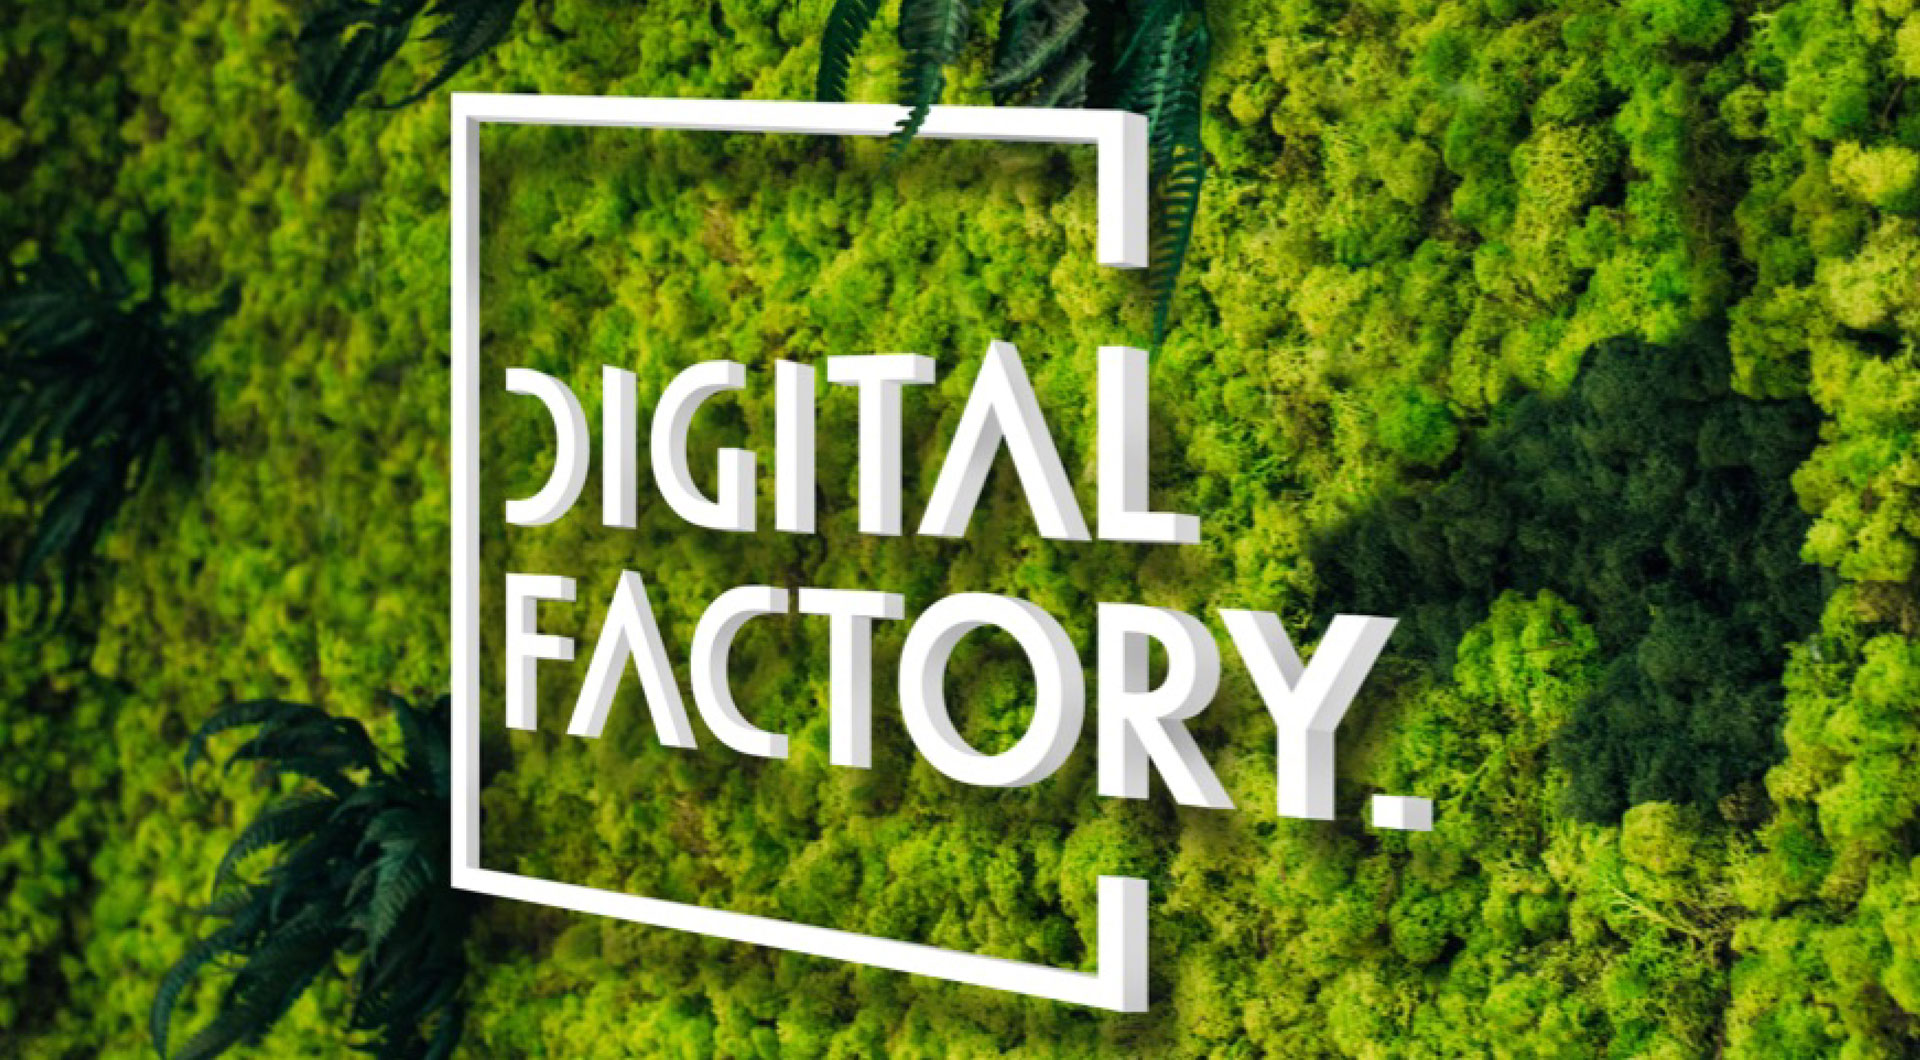 A new identity for Network Rail's digital Factory